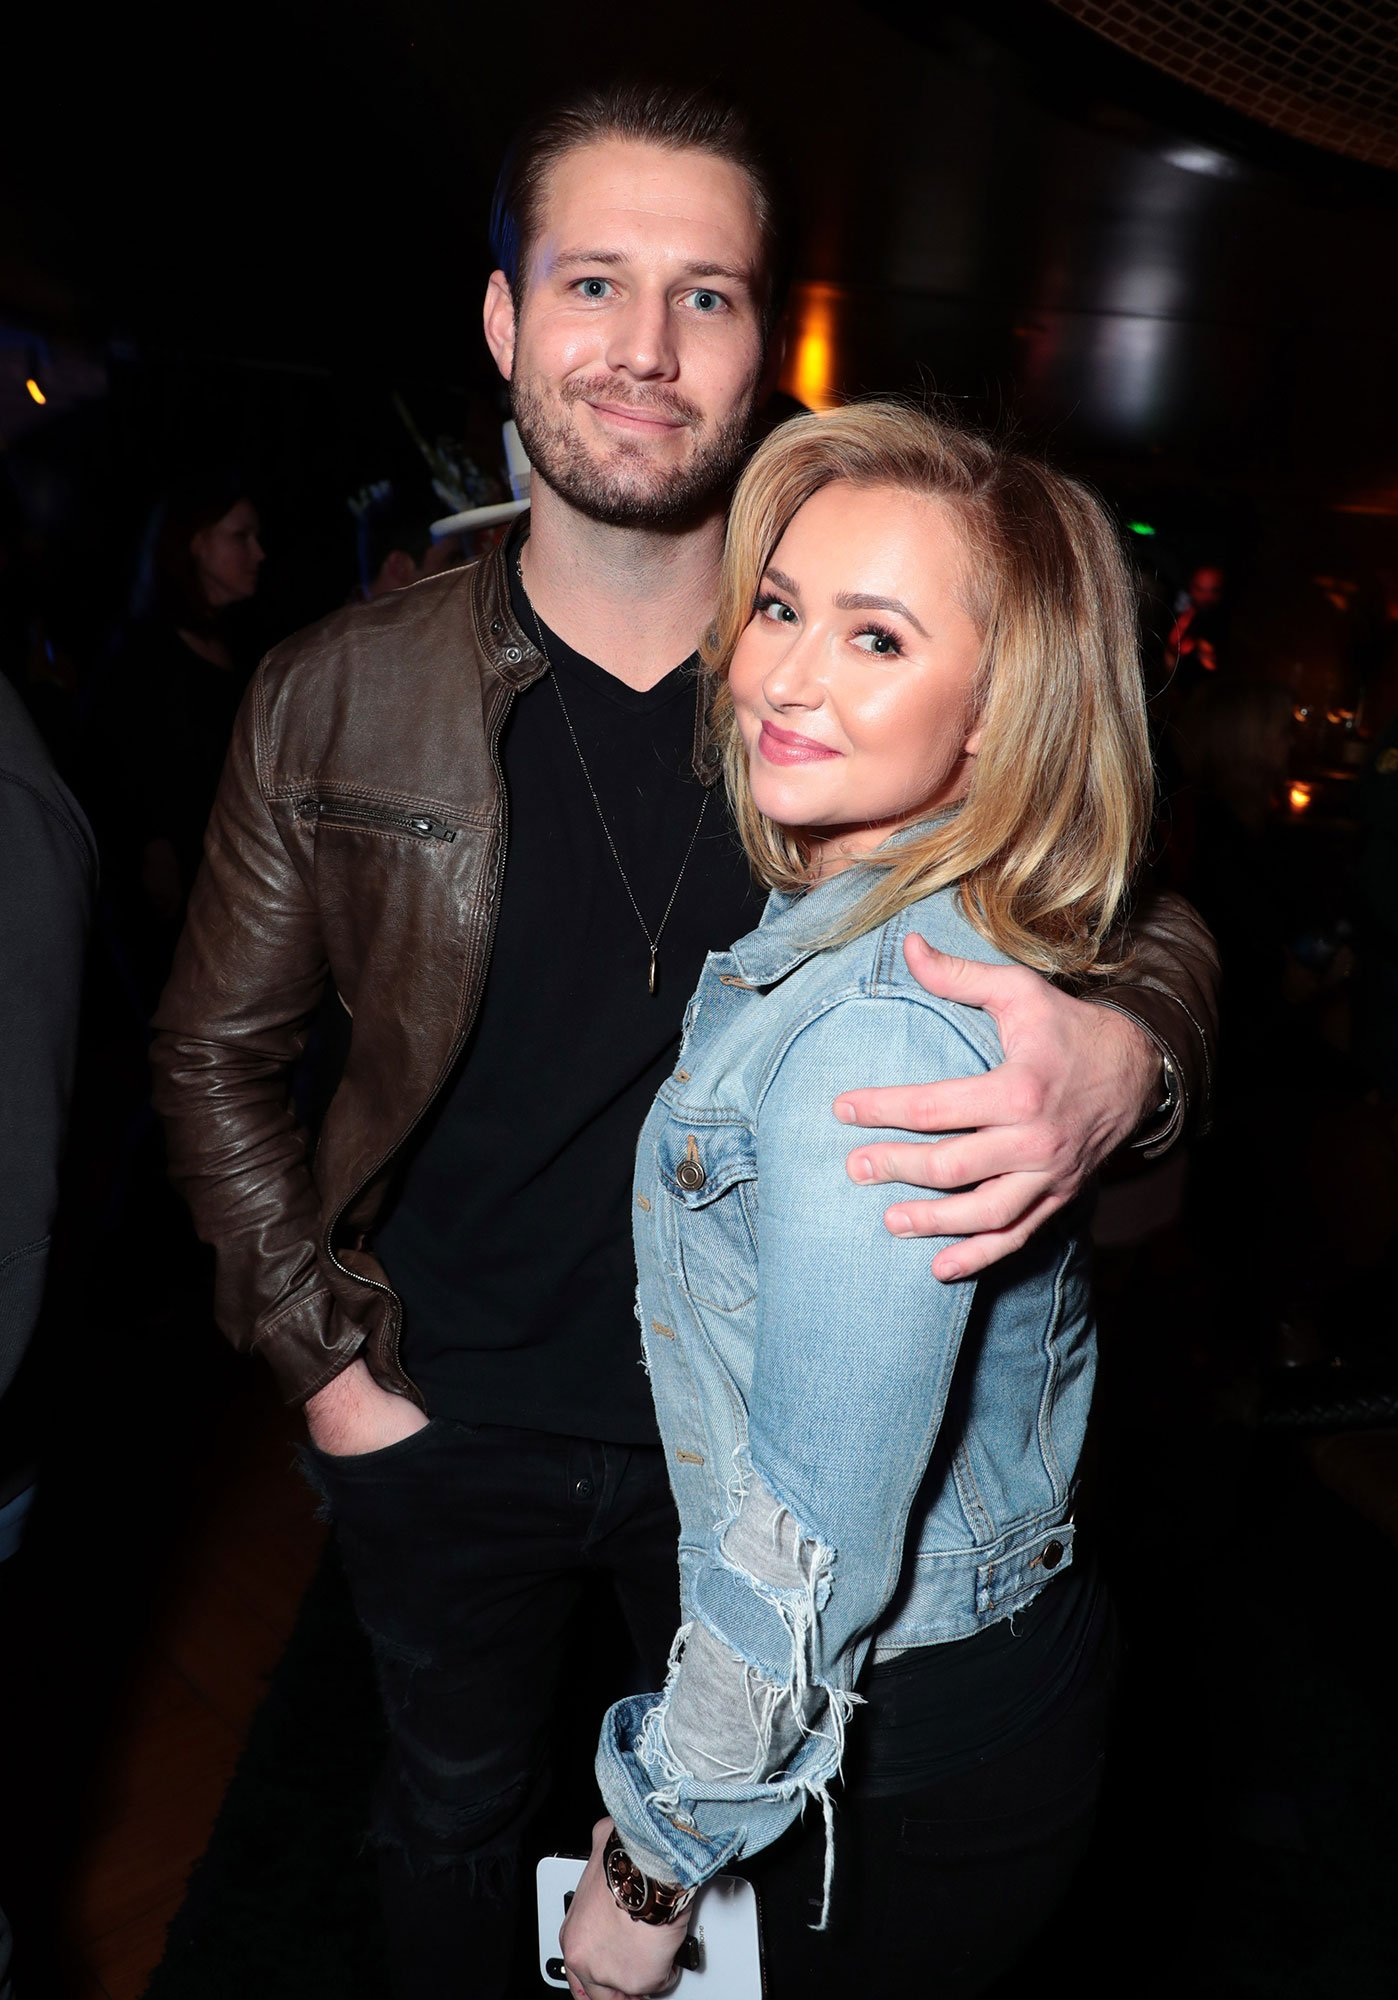 Hayden Panettiere and Boyfriend Brian Hickerson Step Out Together After Defending Relationship